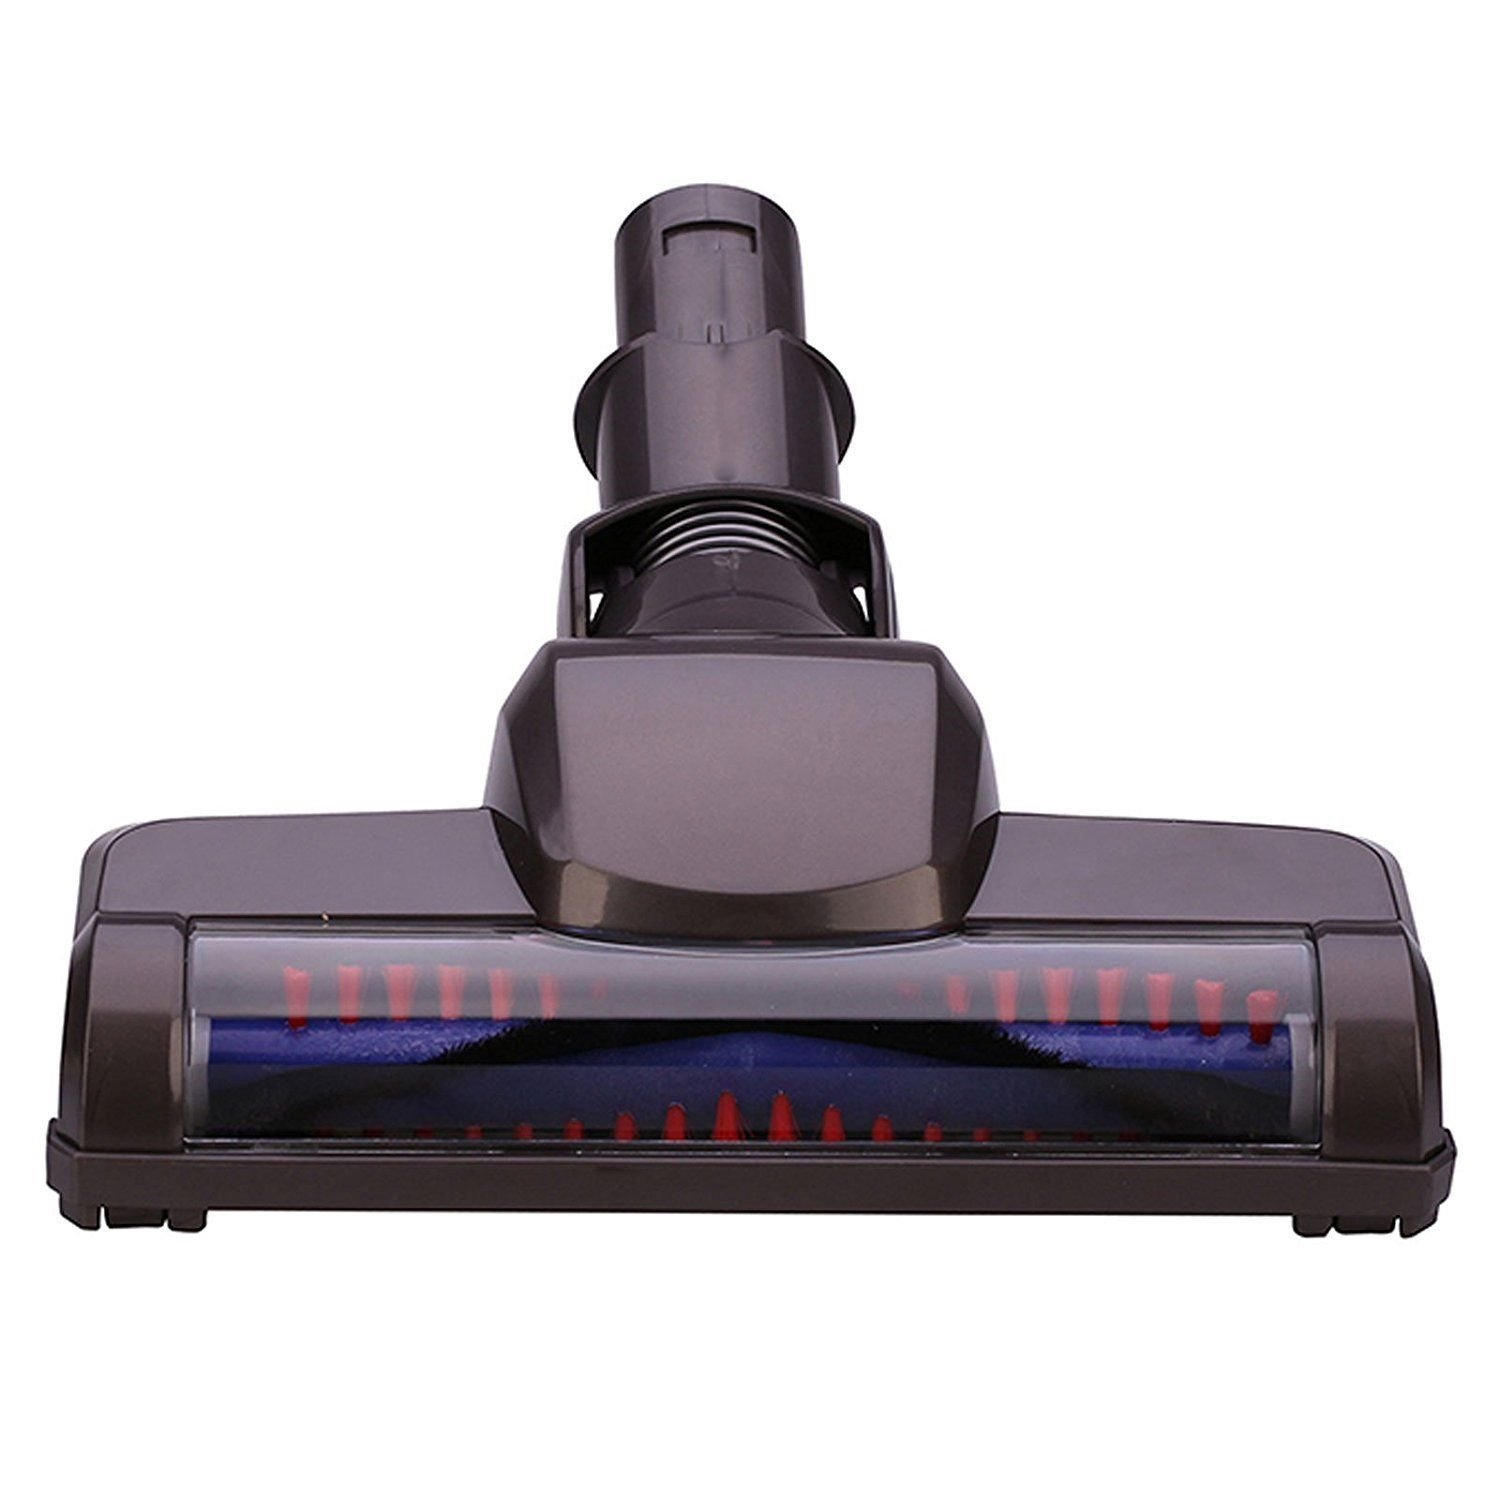 superbobi- Motor Head Motorised Floor Tool Brushroll for Dyson V6 Animal Vacuum Cleaners